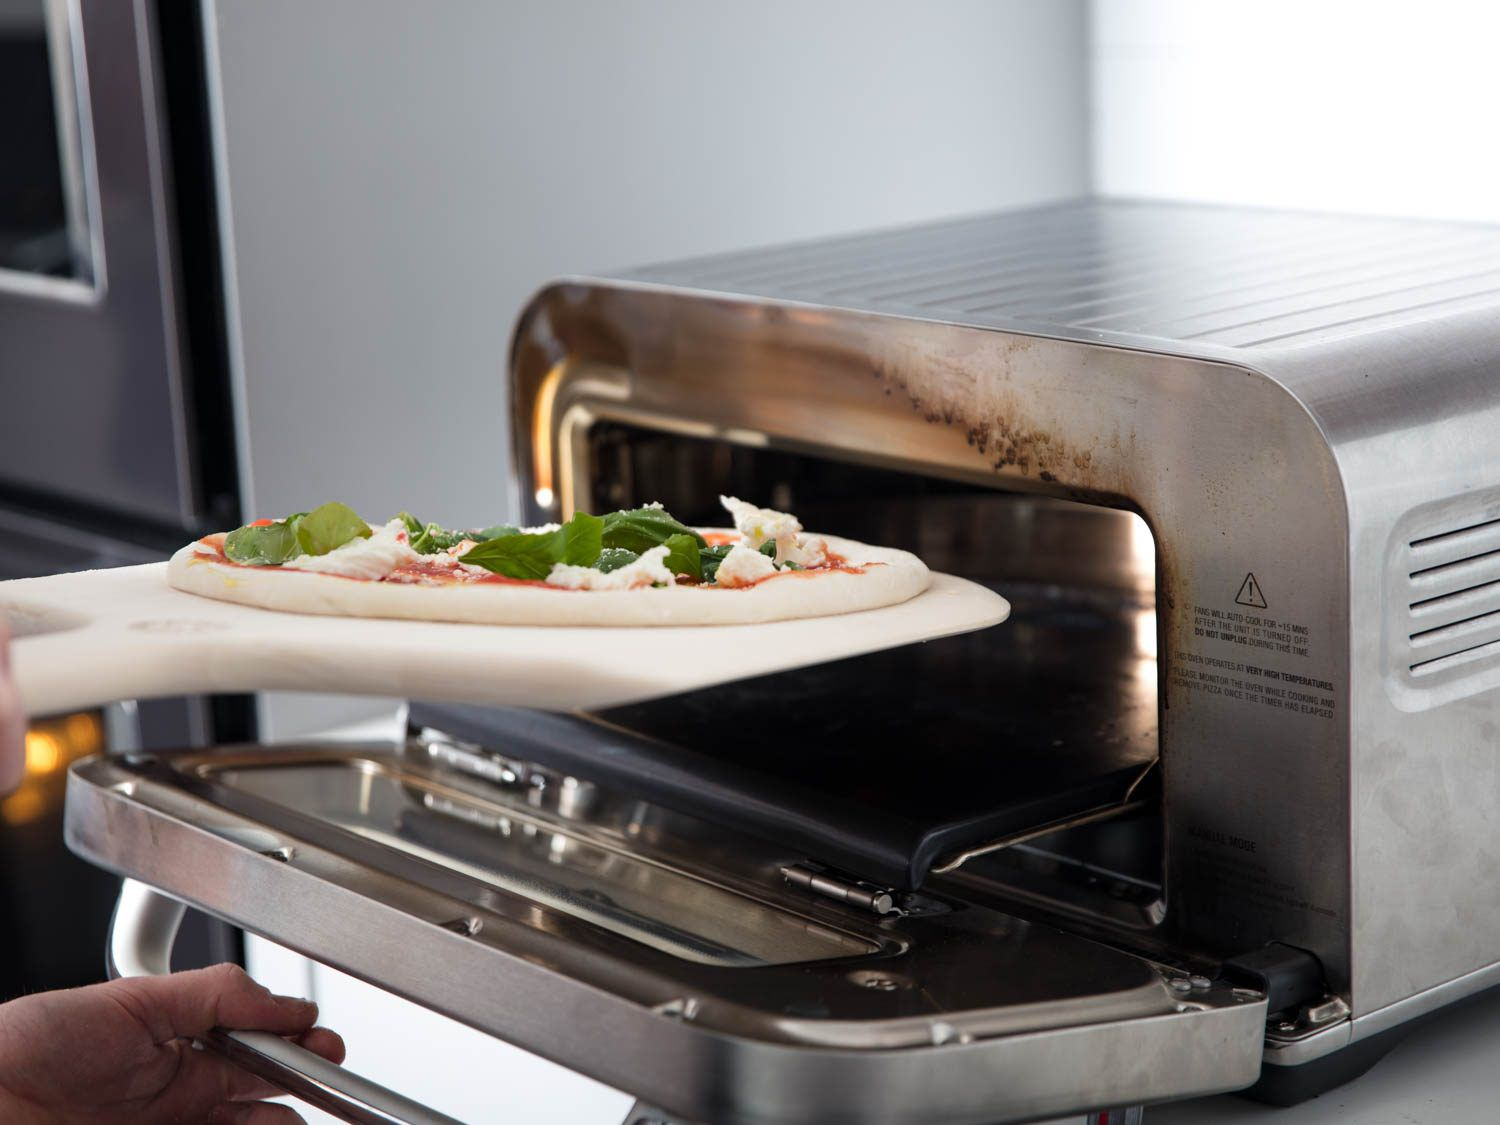 Sliding a margherita pizza into the Breville oven.